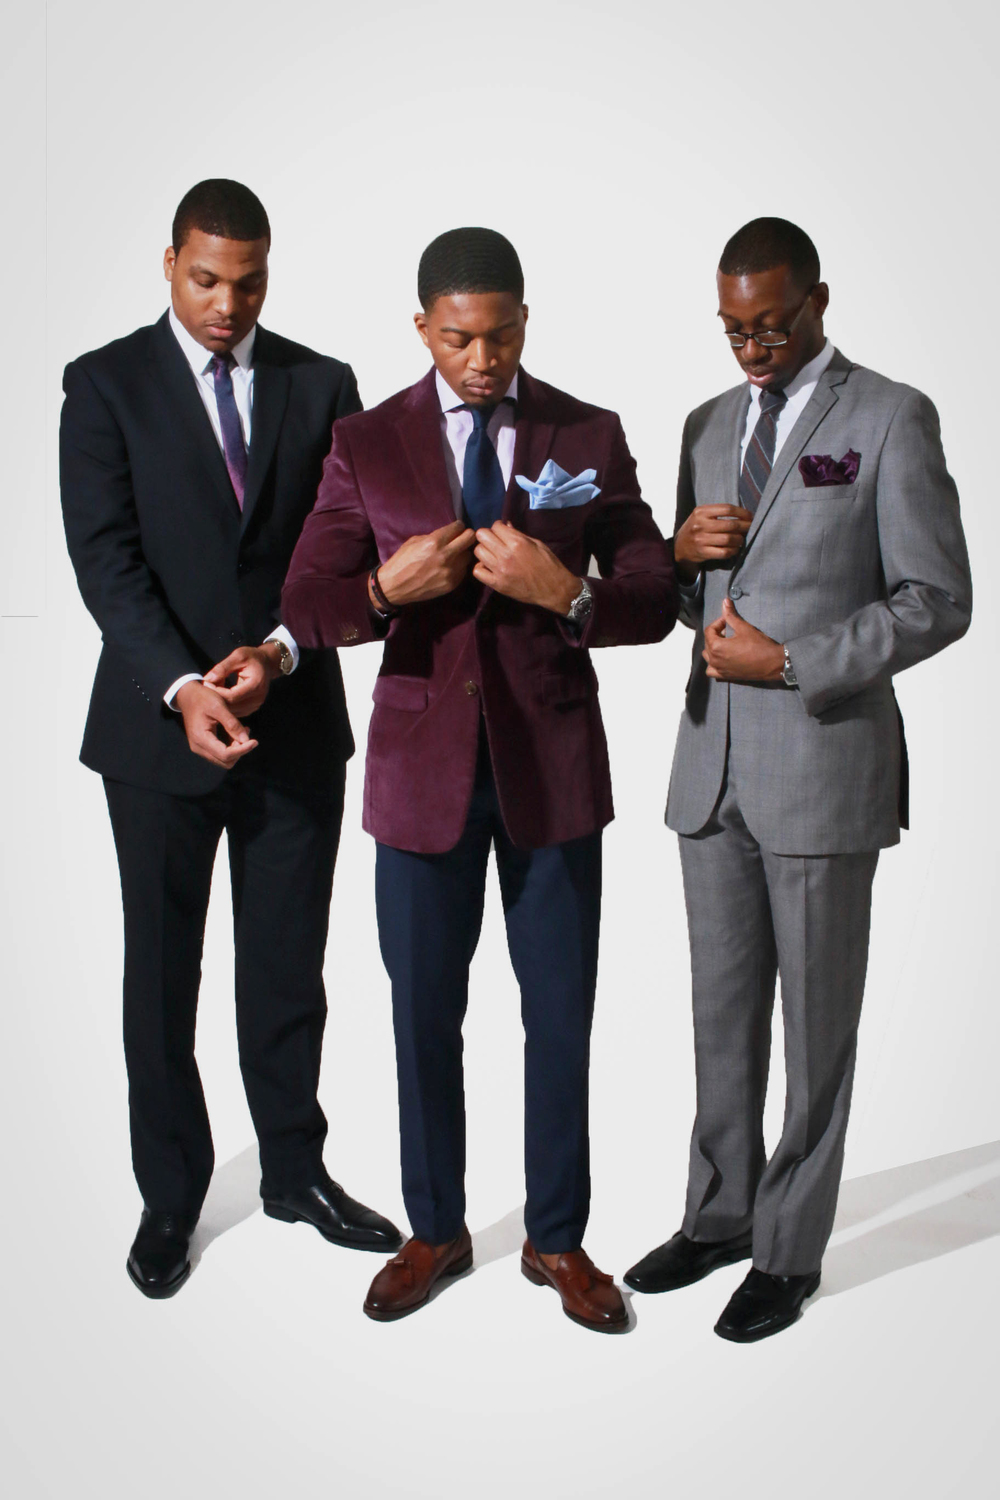 CB, Joshua and TJ (left to right)